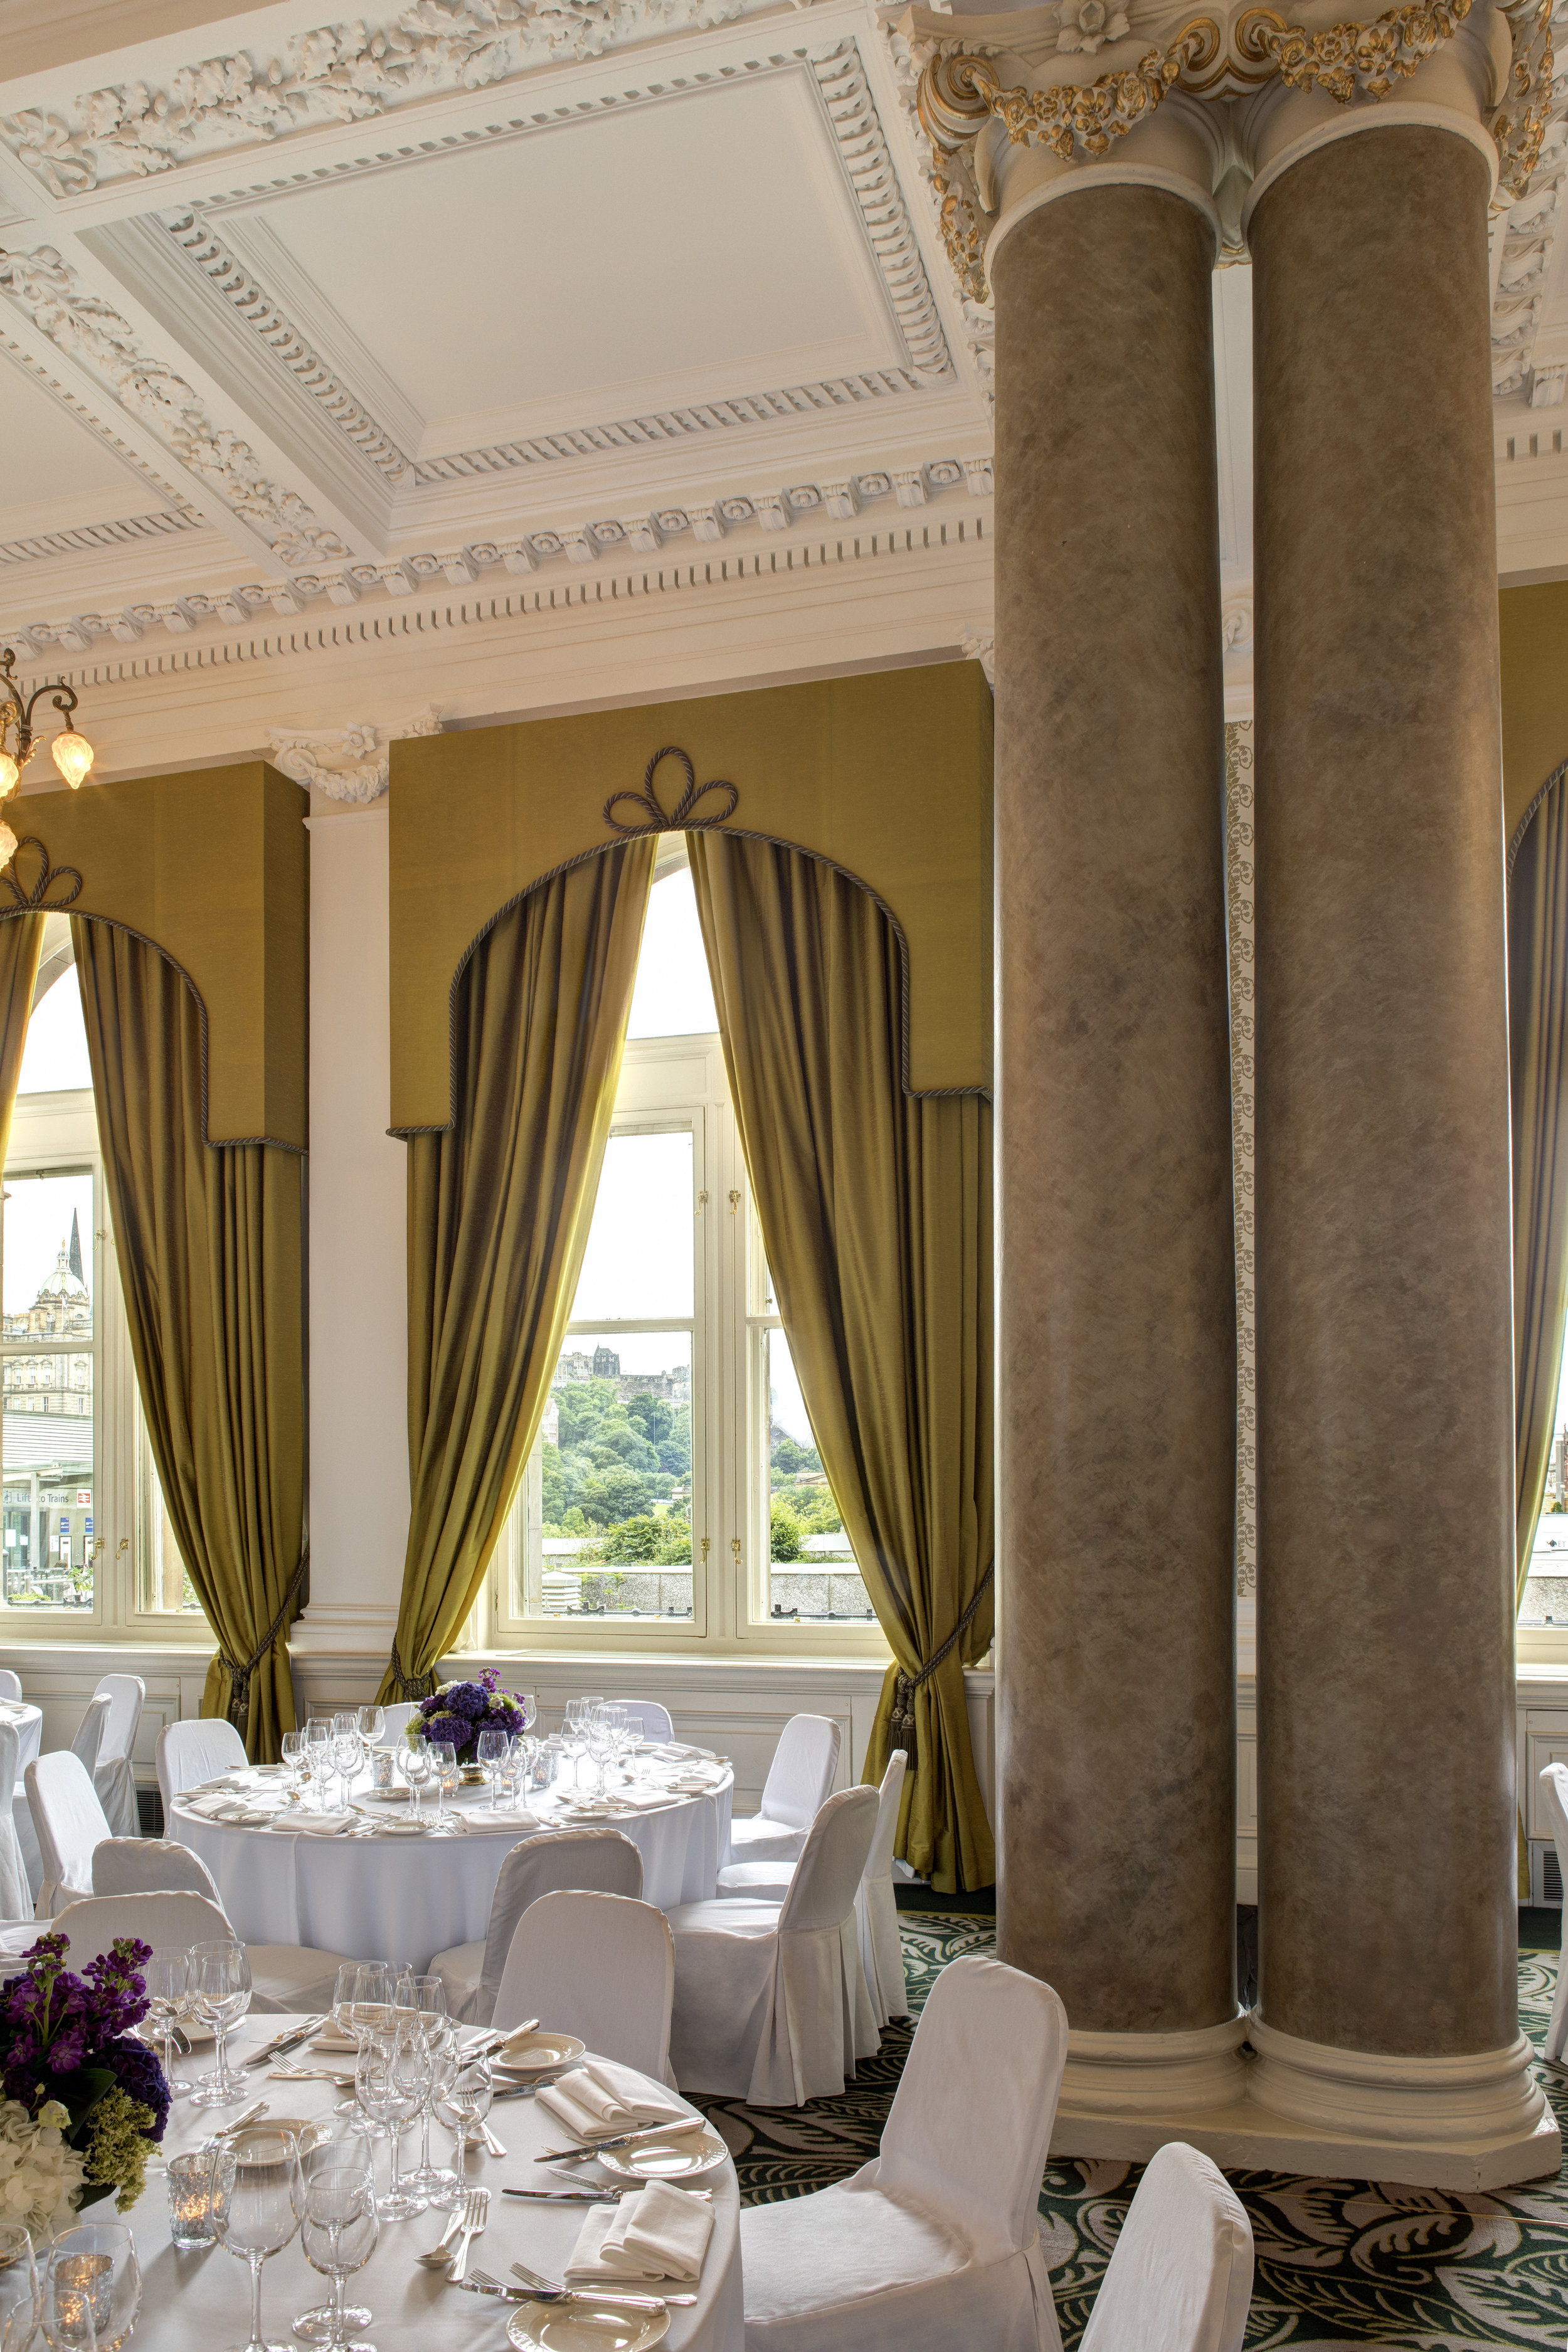 19 RFH The Balmoral - Sir Walter Scott Suite 5567 Jul 17.JPG